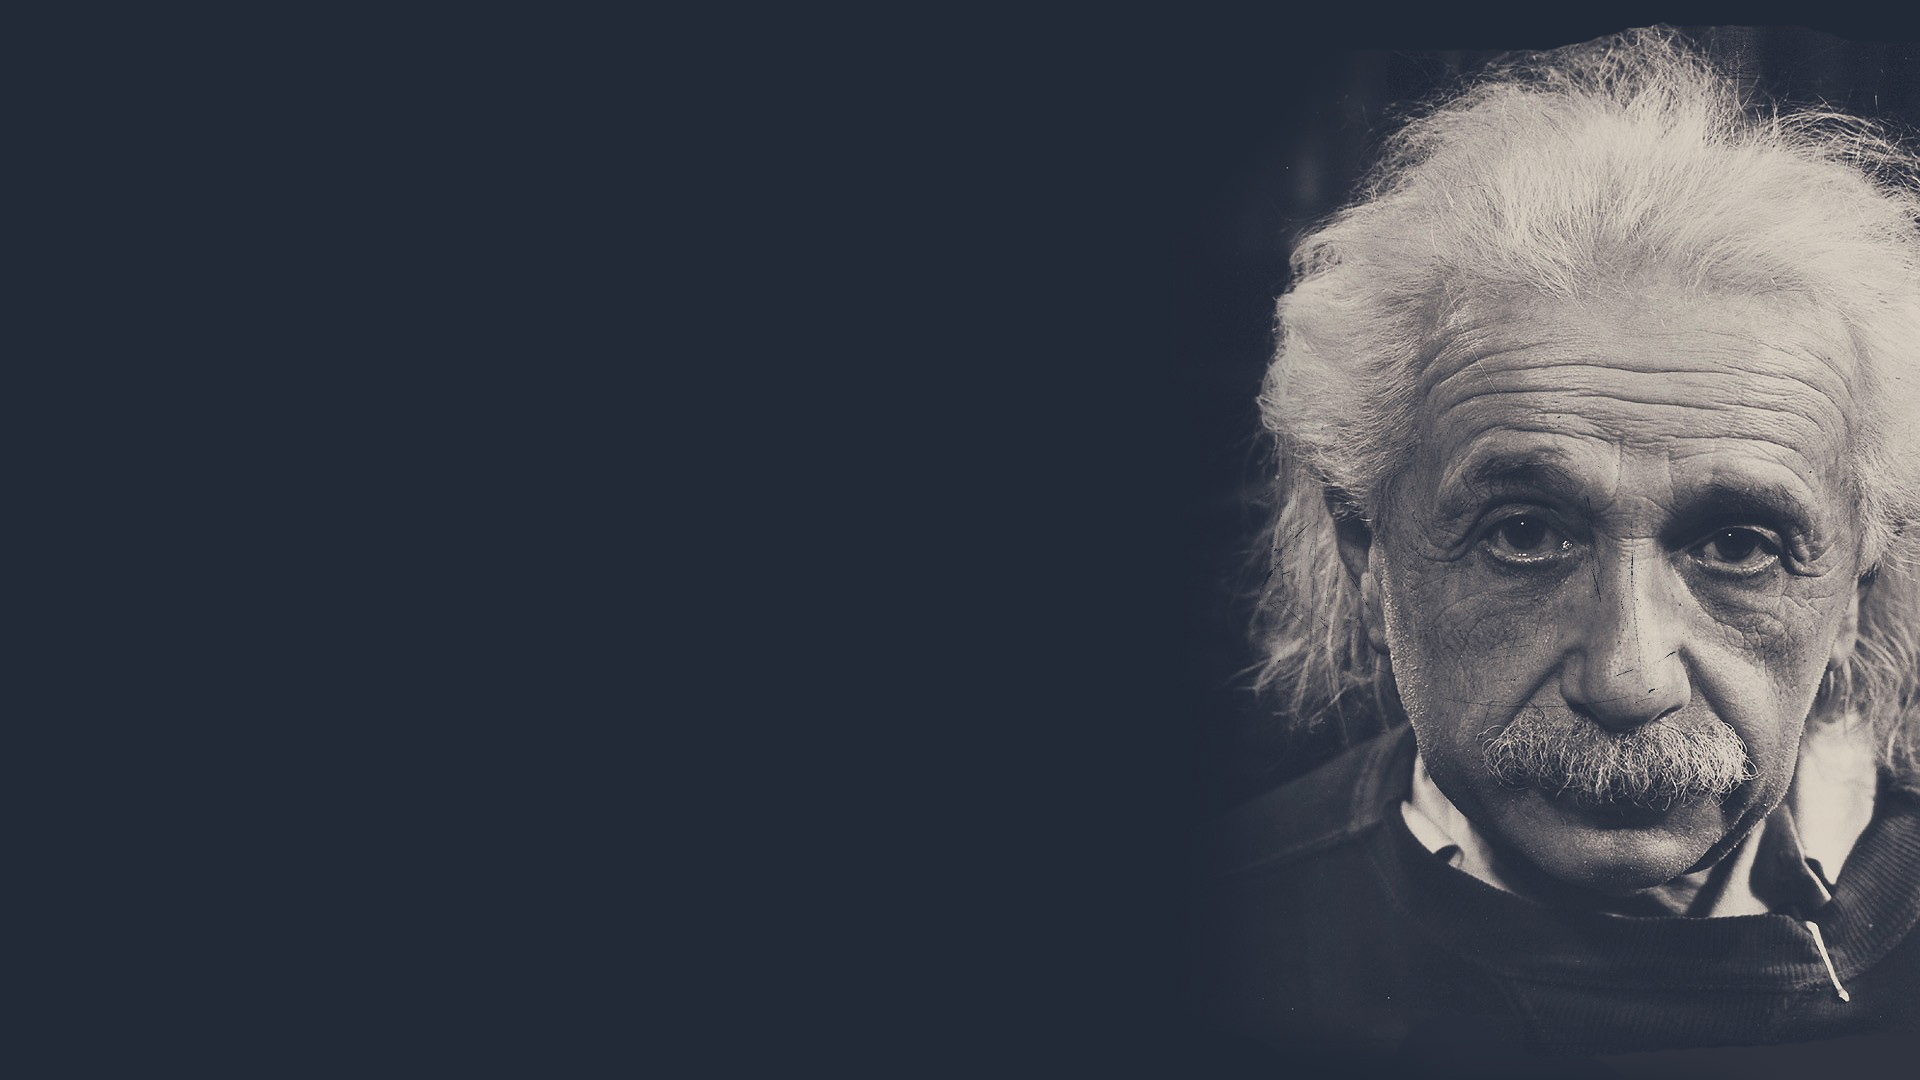 Albert Einstein black and white photograph